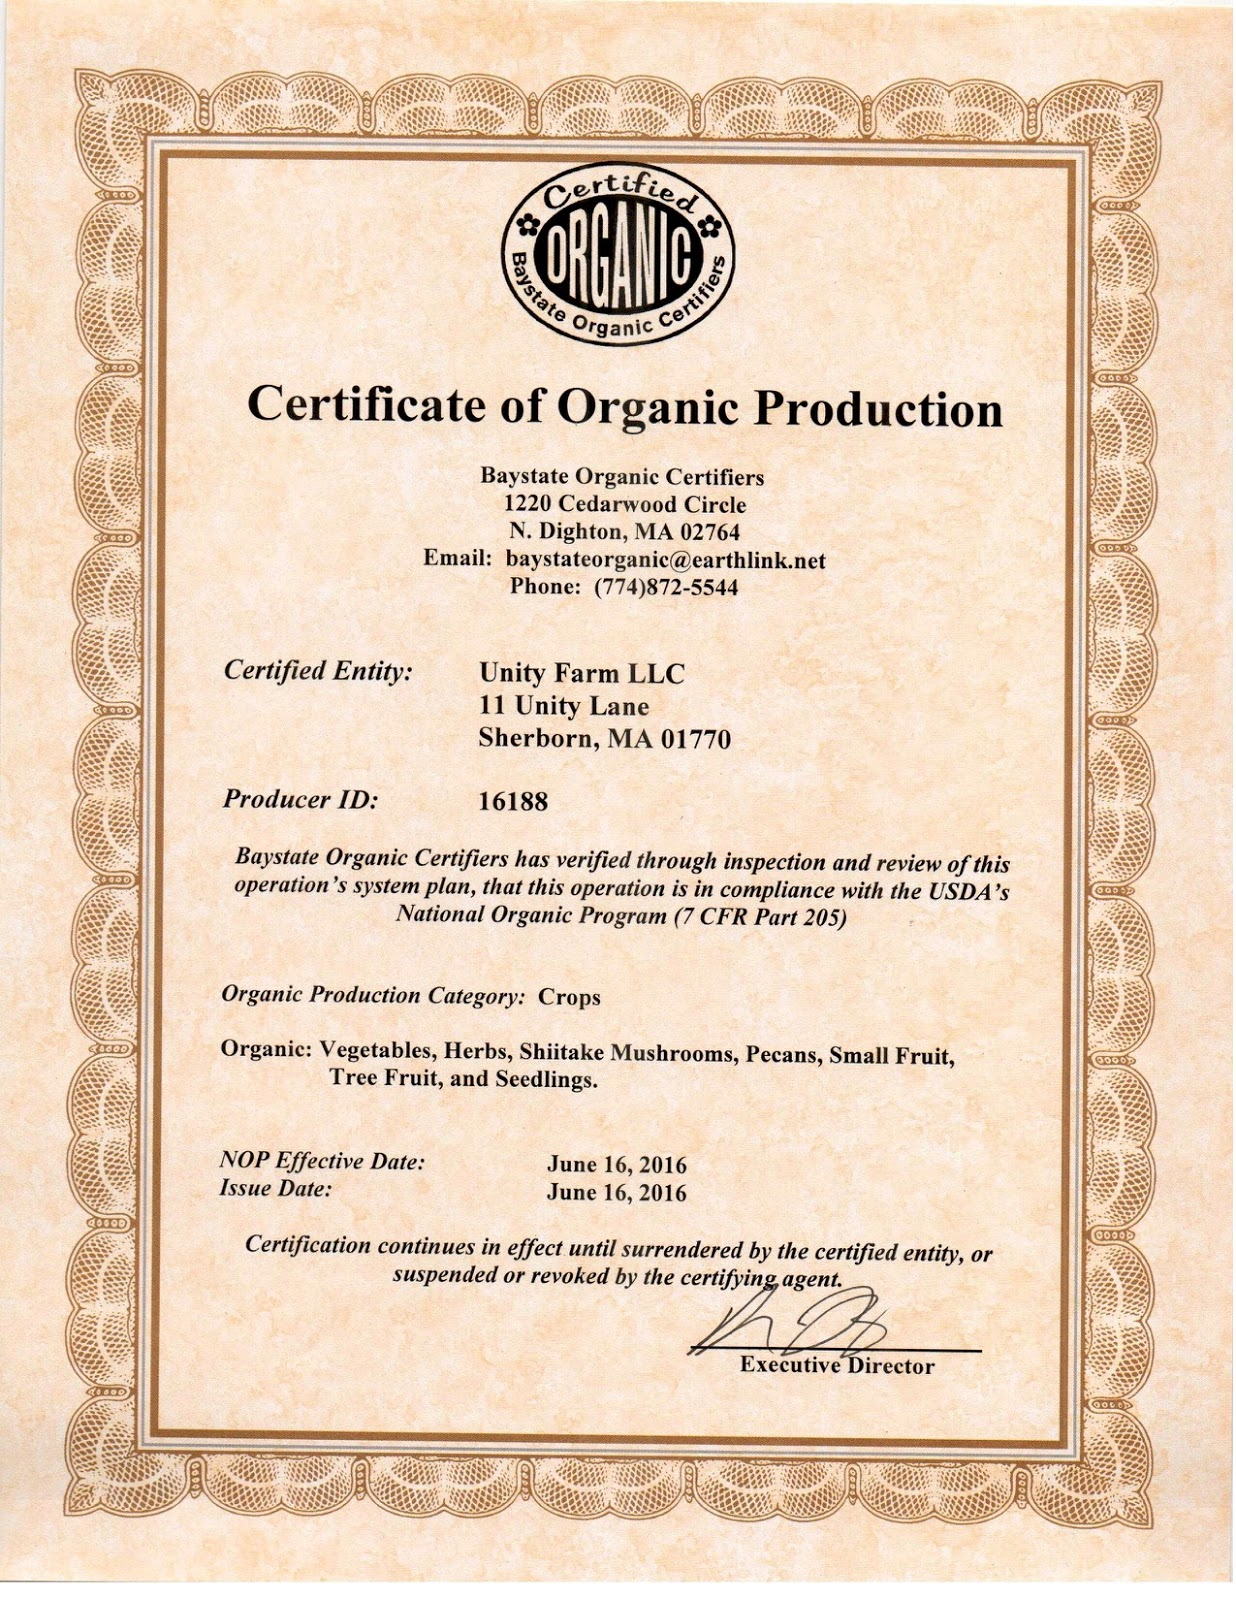 Life as a healthcare cio unity farm journal fourth week of june unity farm is now an organic certified producer of vegetables herbs mushrooms nuts fruits and seedlings heres our official designation 1betcityfo Choice Image